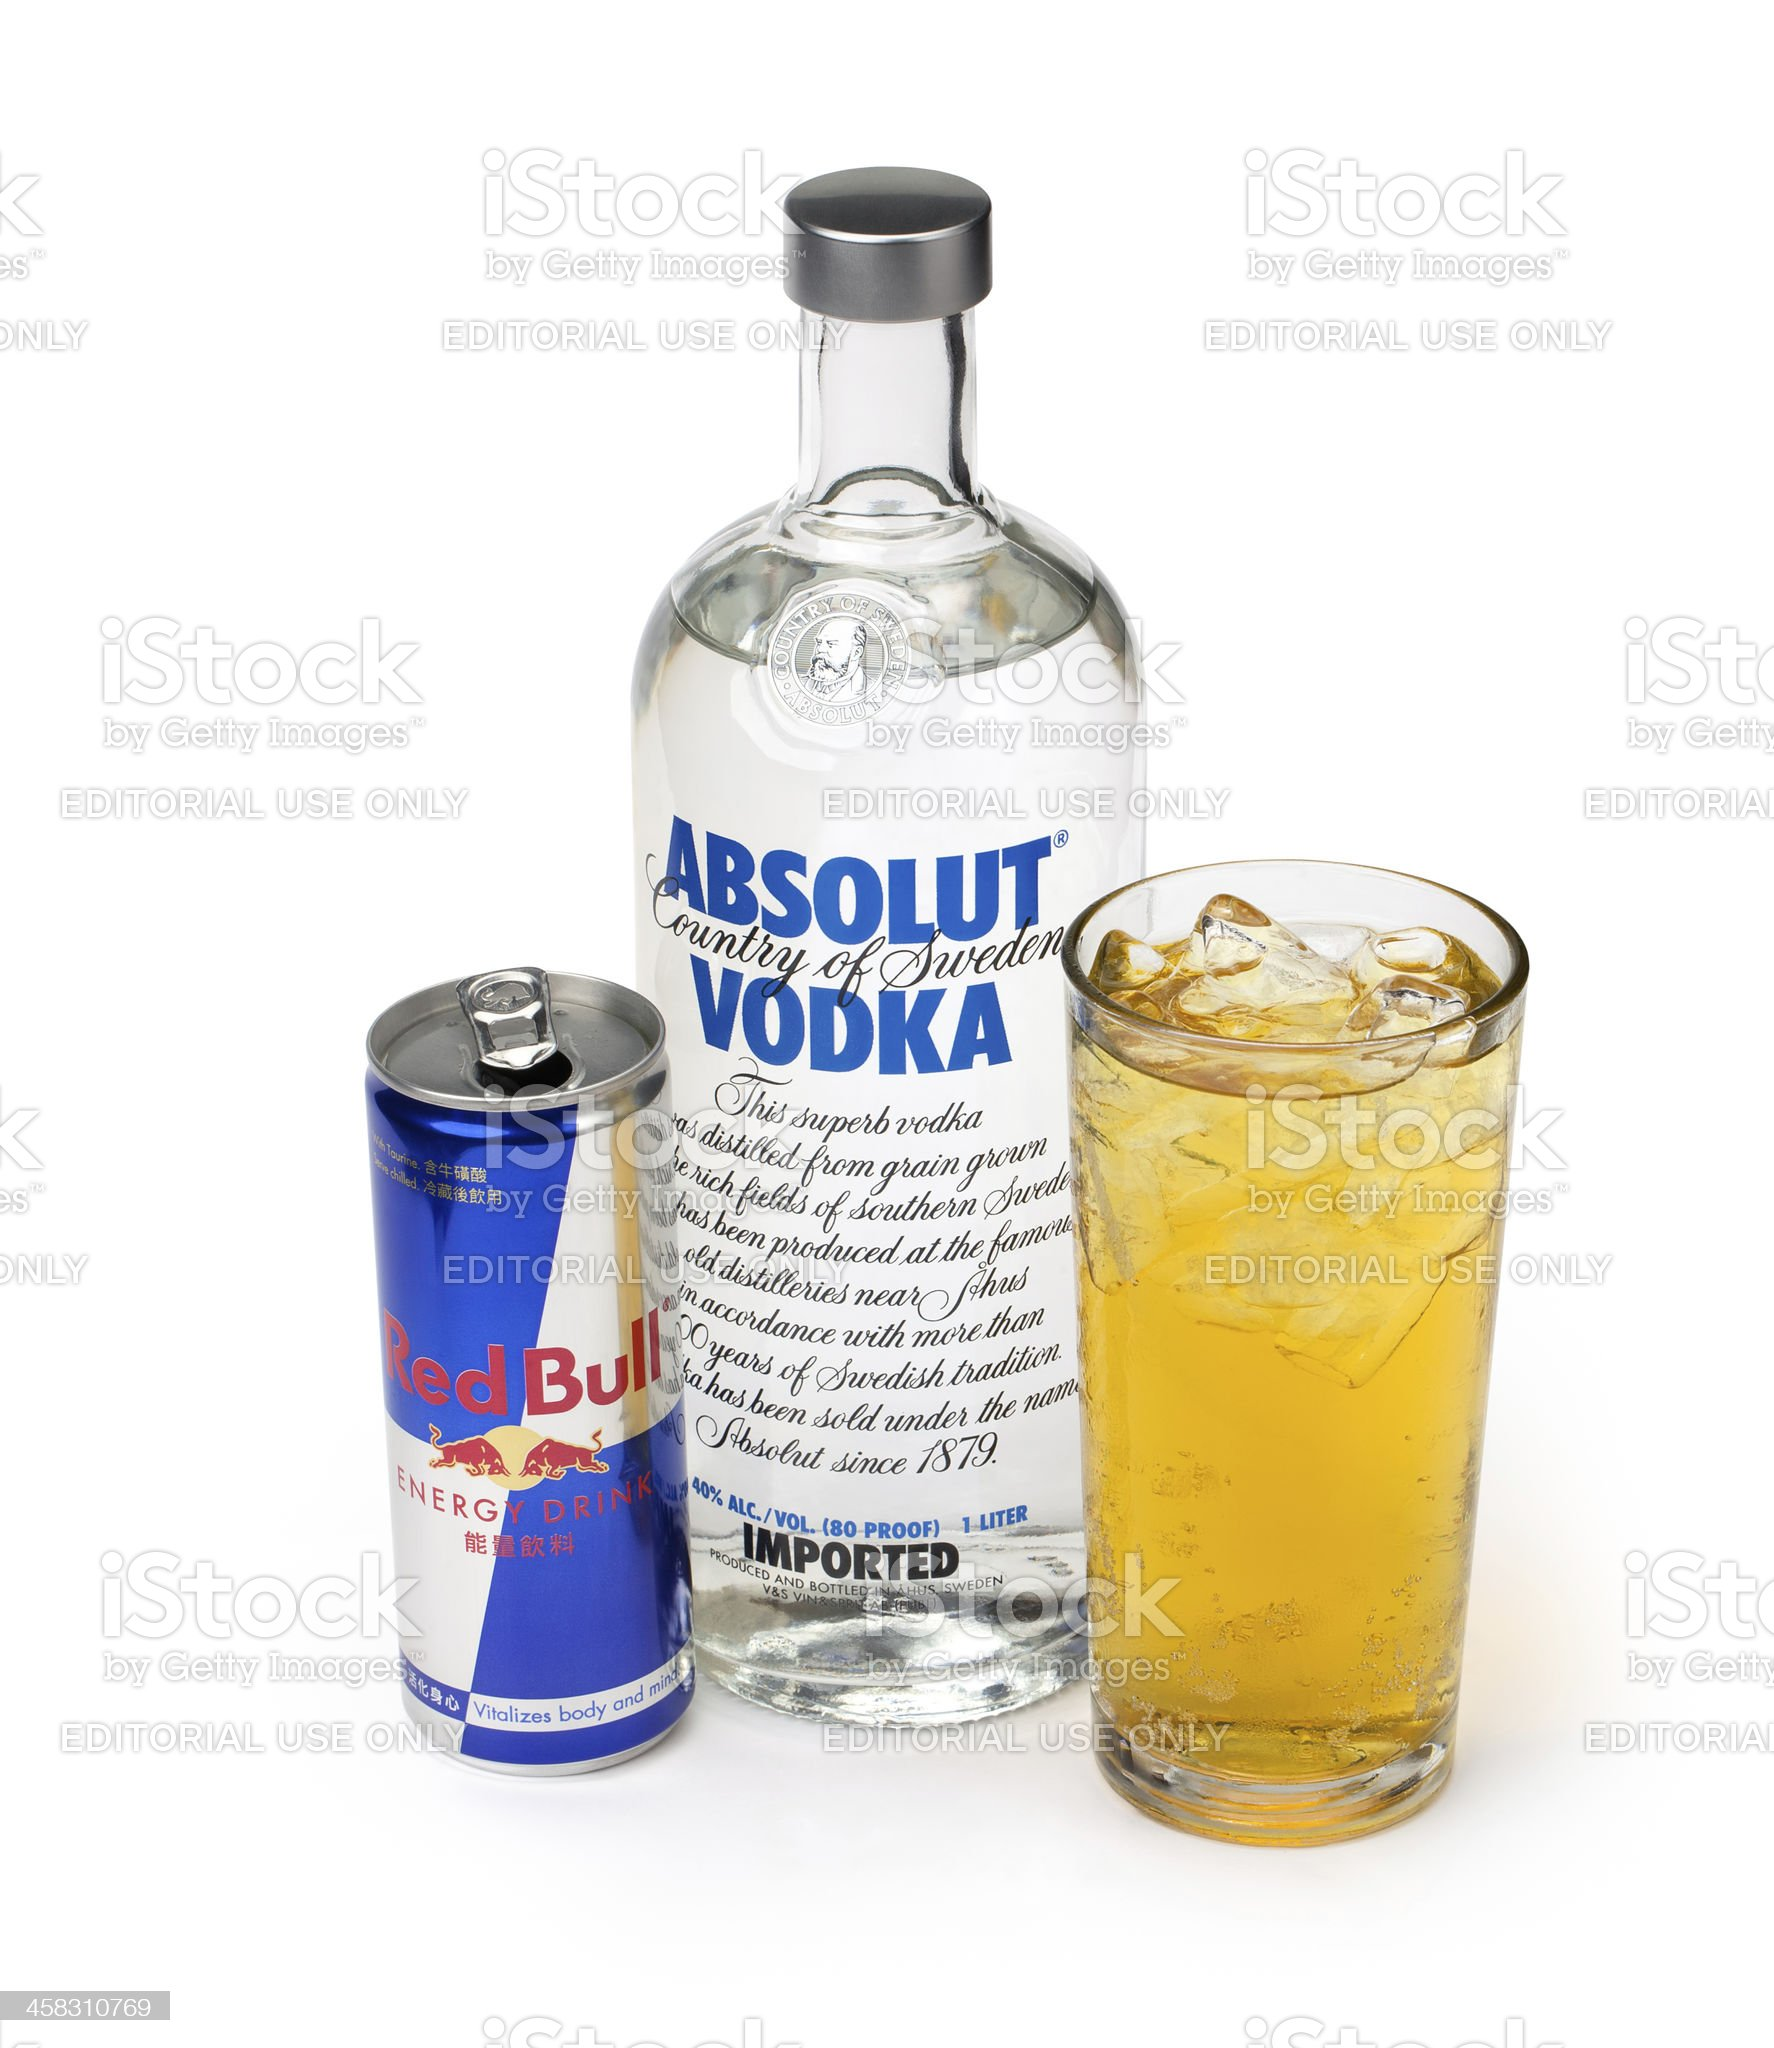 Vodka Red Bull with mix royalty-free stock photo